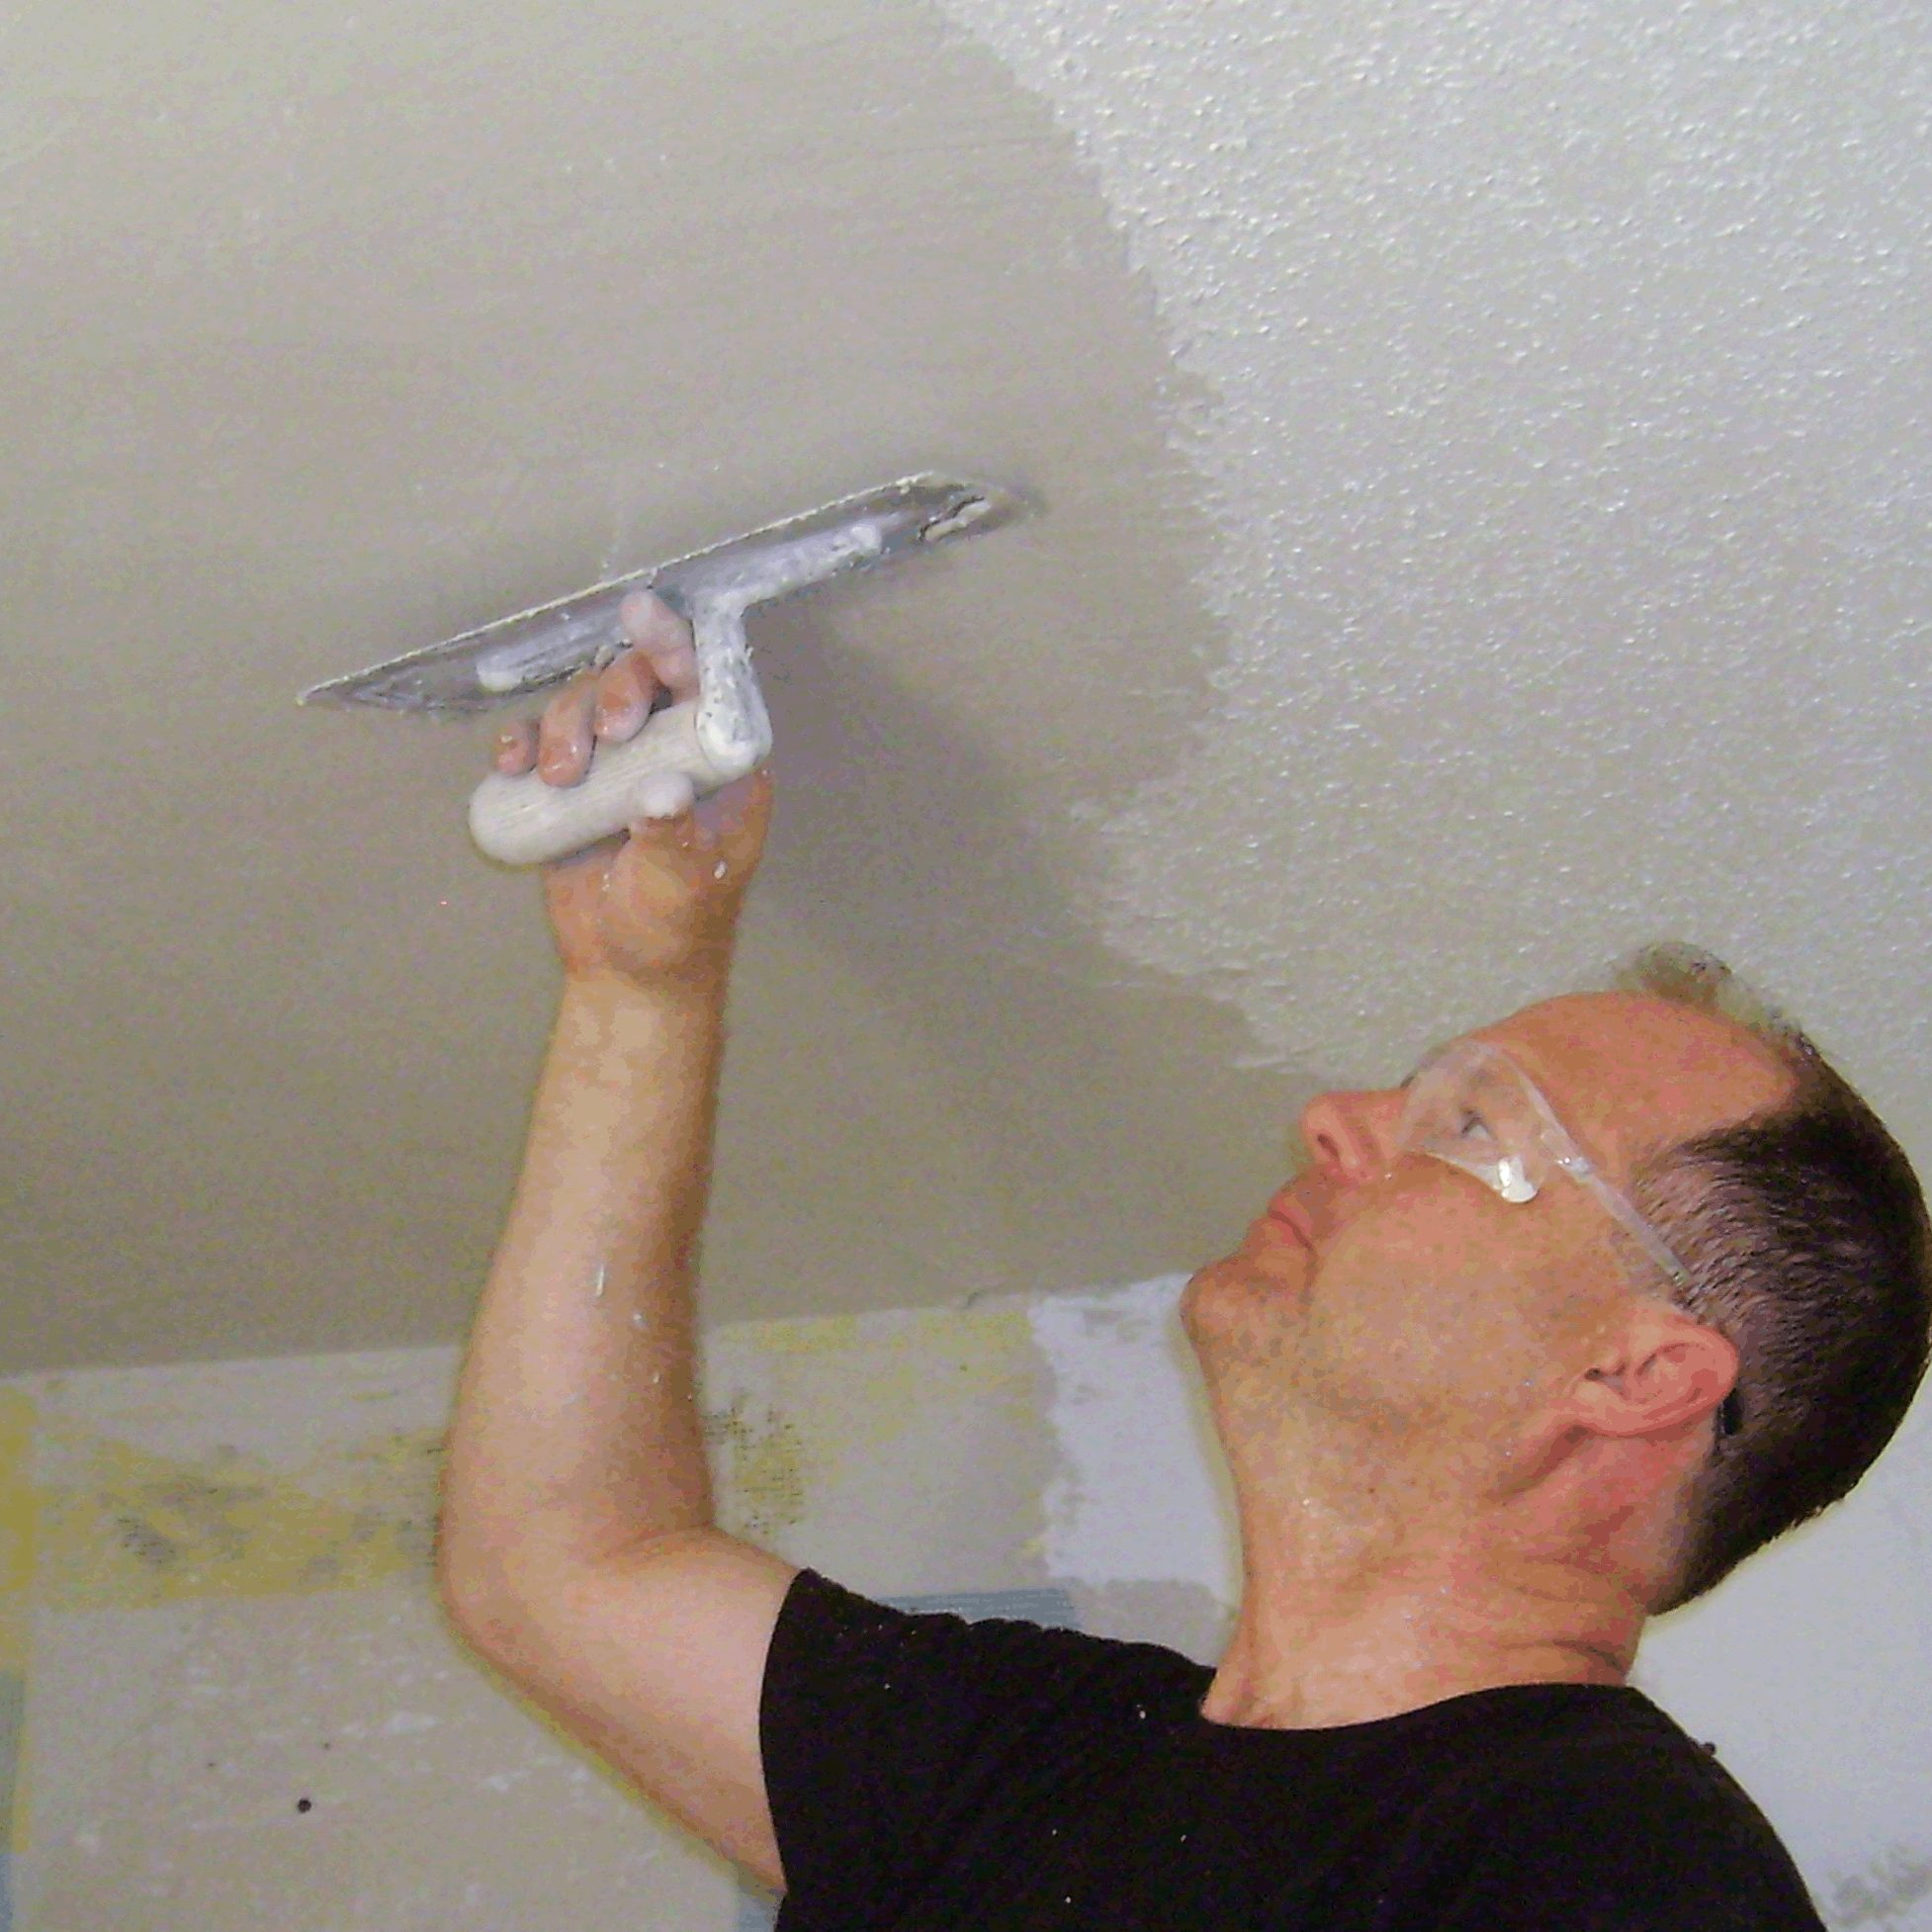 Plasterman working